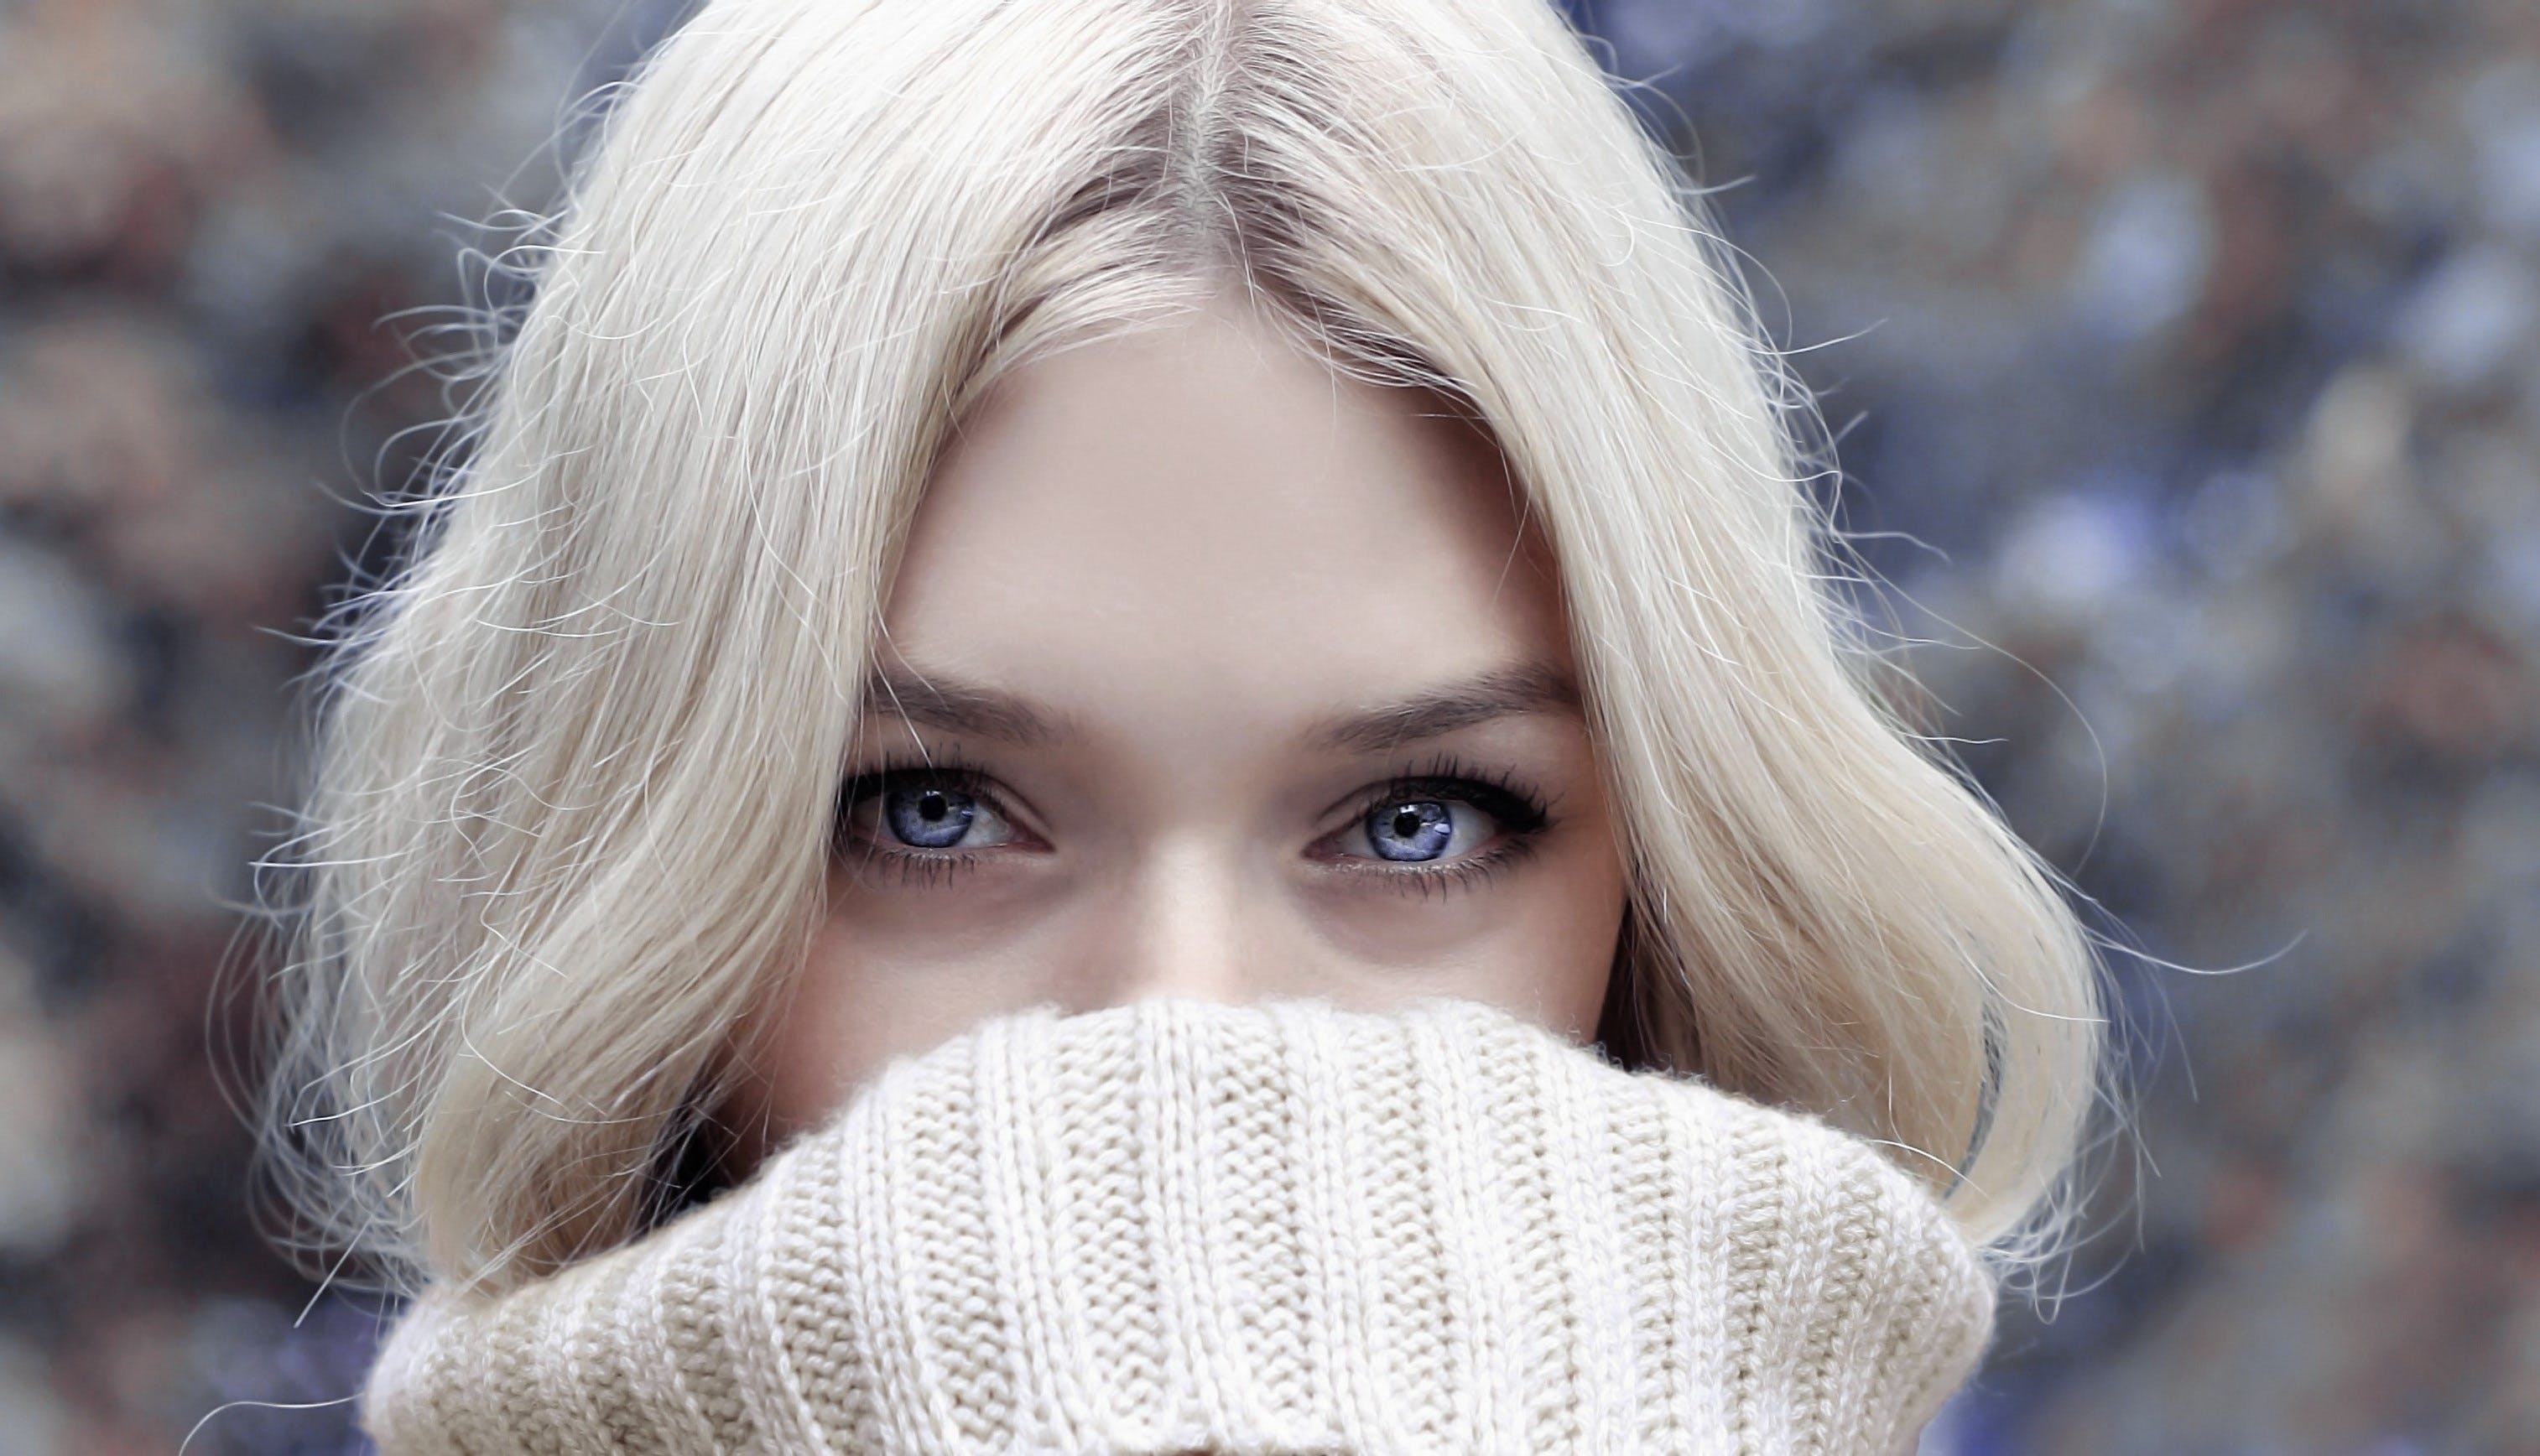 Free stock photo of cold, fashion, woman, winter